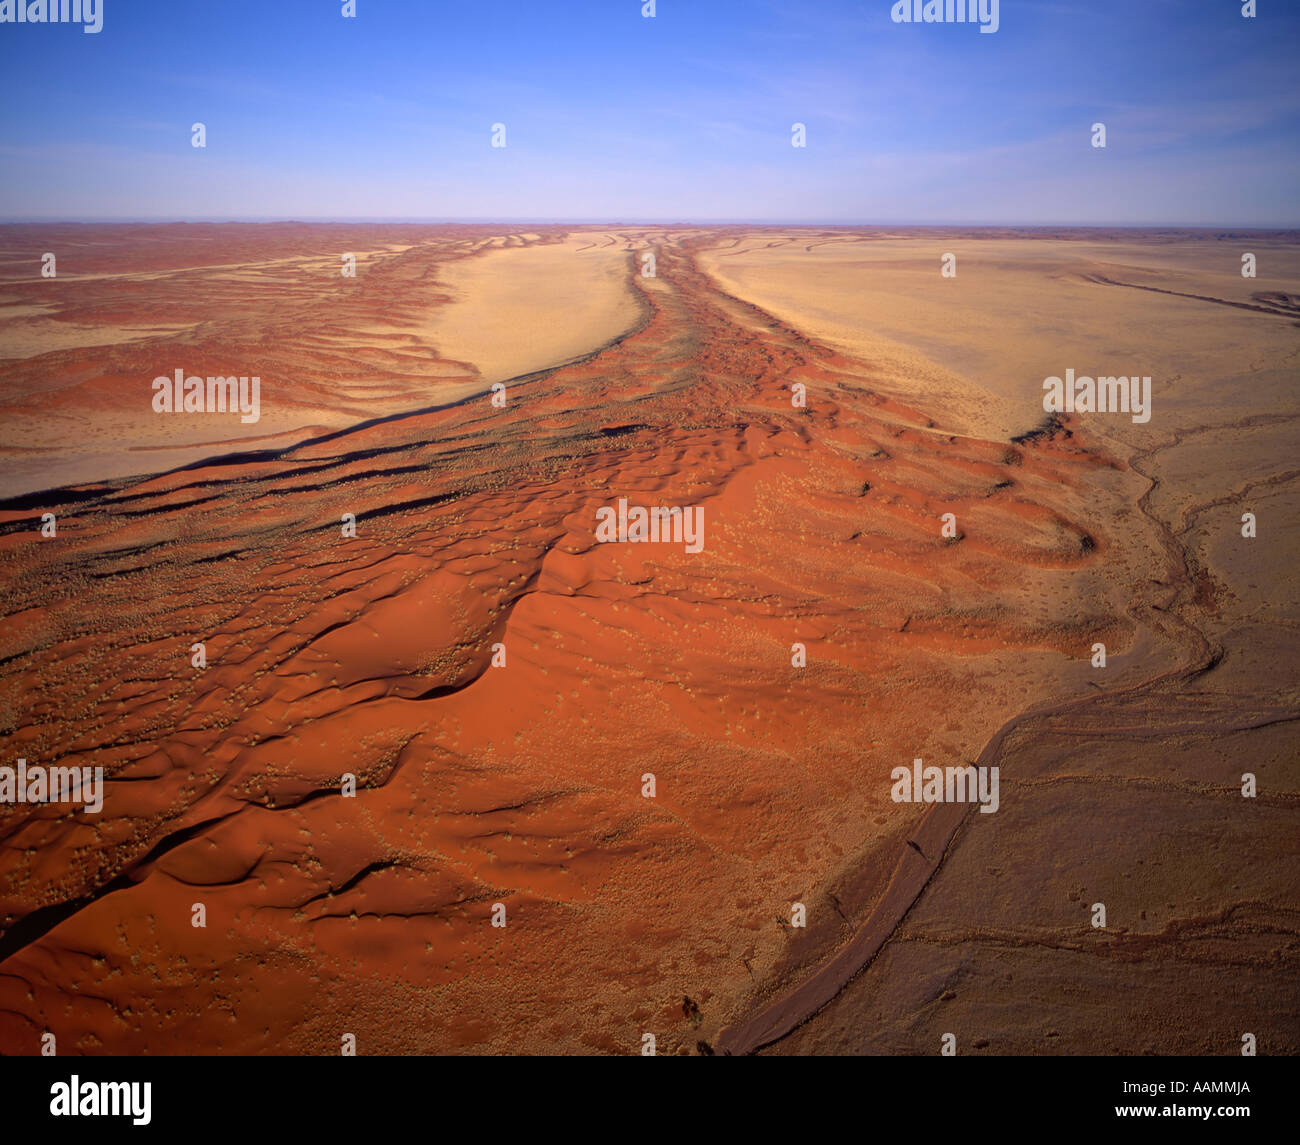 Linear sand dunes in the Namib Naukluft National Park, Namibia - Stock Image